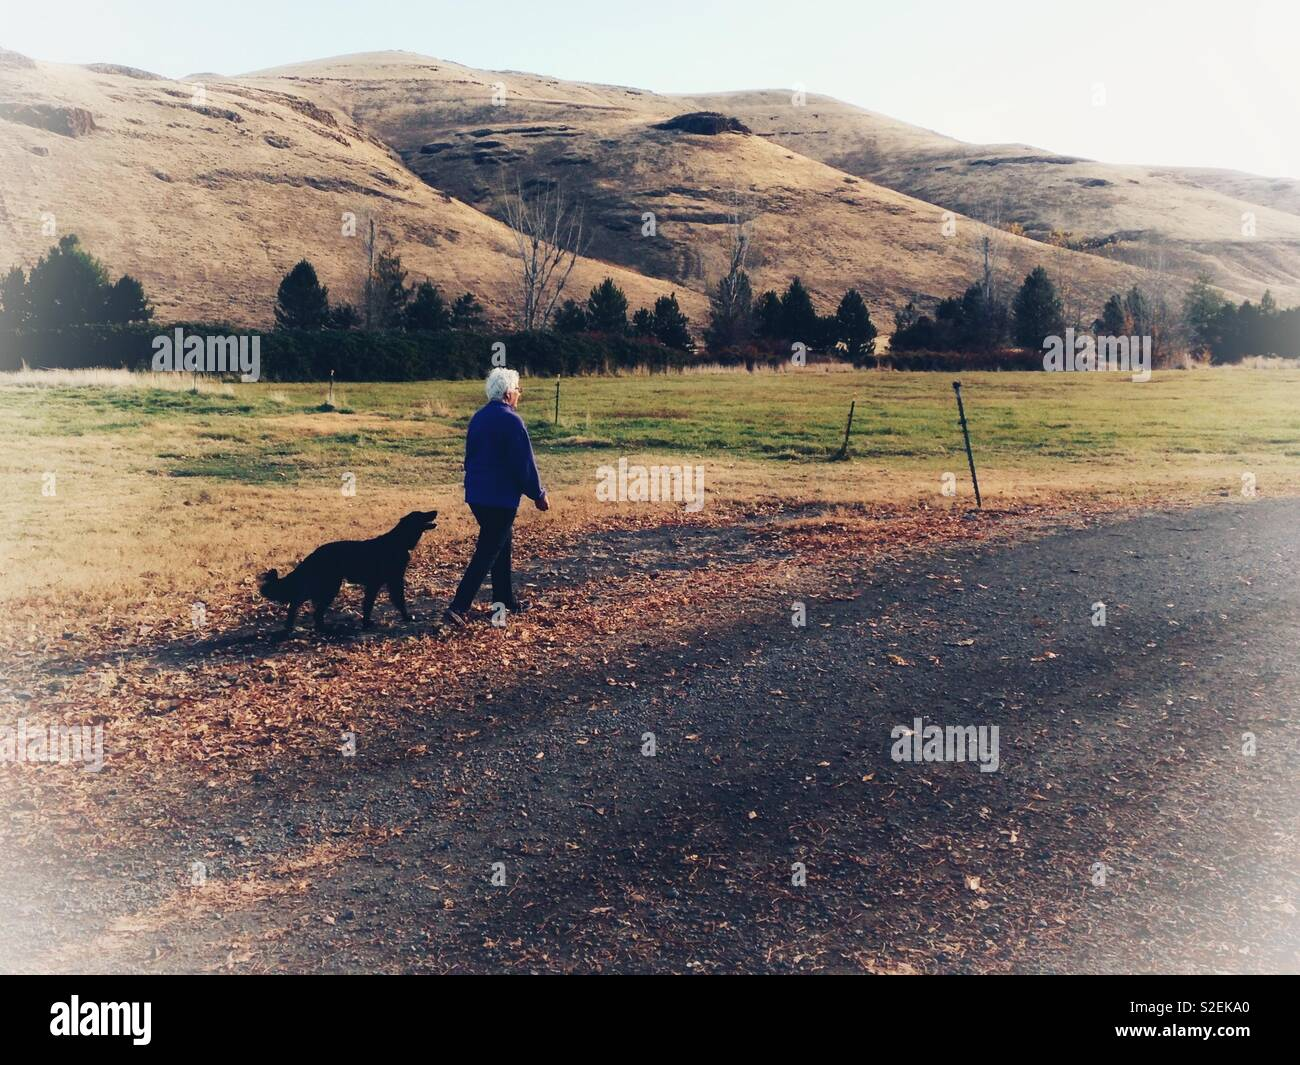 Dog follows middle aged woman walking near hills in eastern Washington - Stock Image